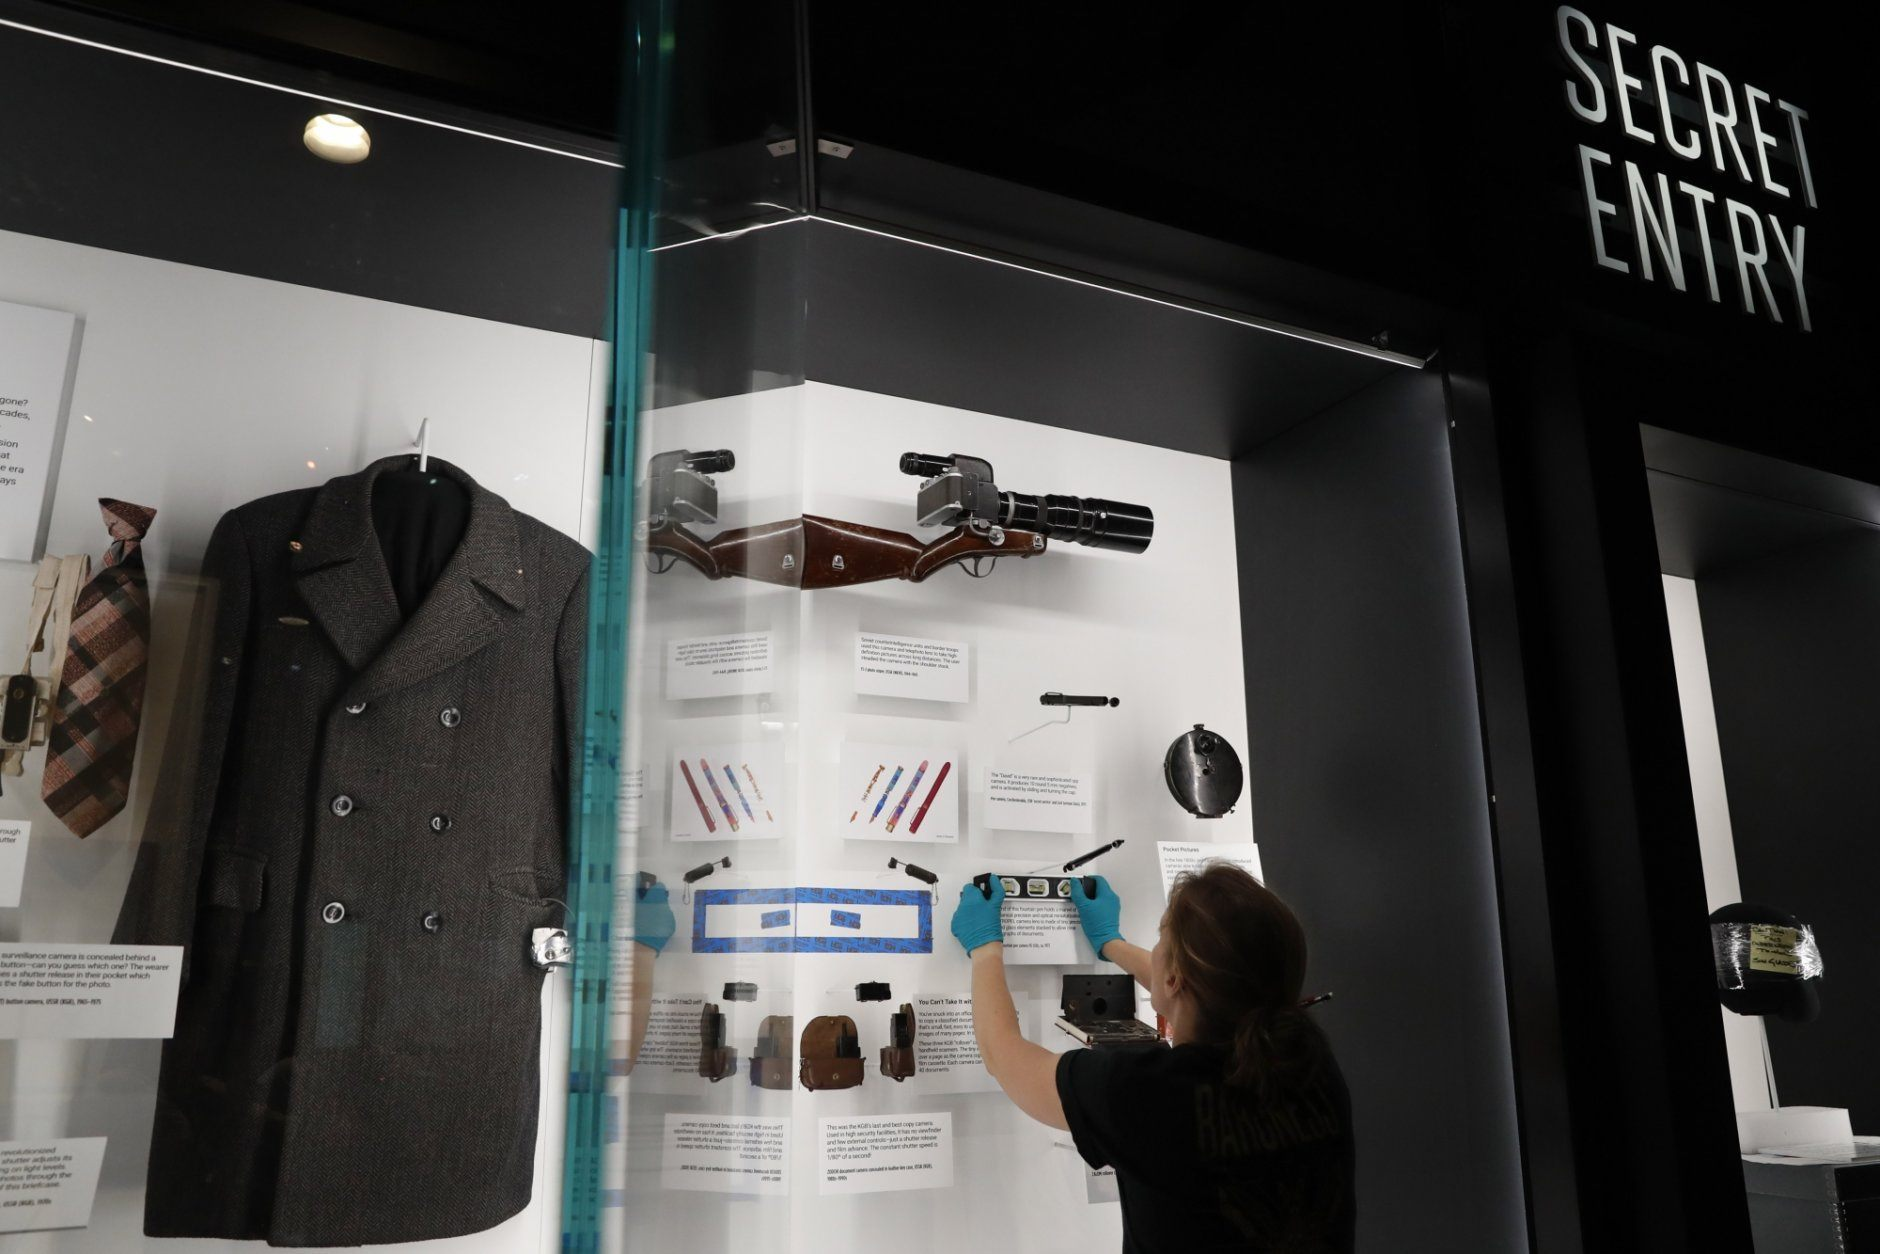 Exhibits are installed in the new International Spy Museum, Tuesday April 30, 2019, in Washington. Take a back seat James Bond, because it's the stories of real-life spies that take center stage at the new International Spy Museum in Washington.  The expanded museum in its new building will open May 12. (AP Photo/Jacquelyn Martin)